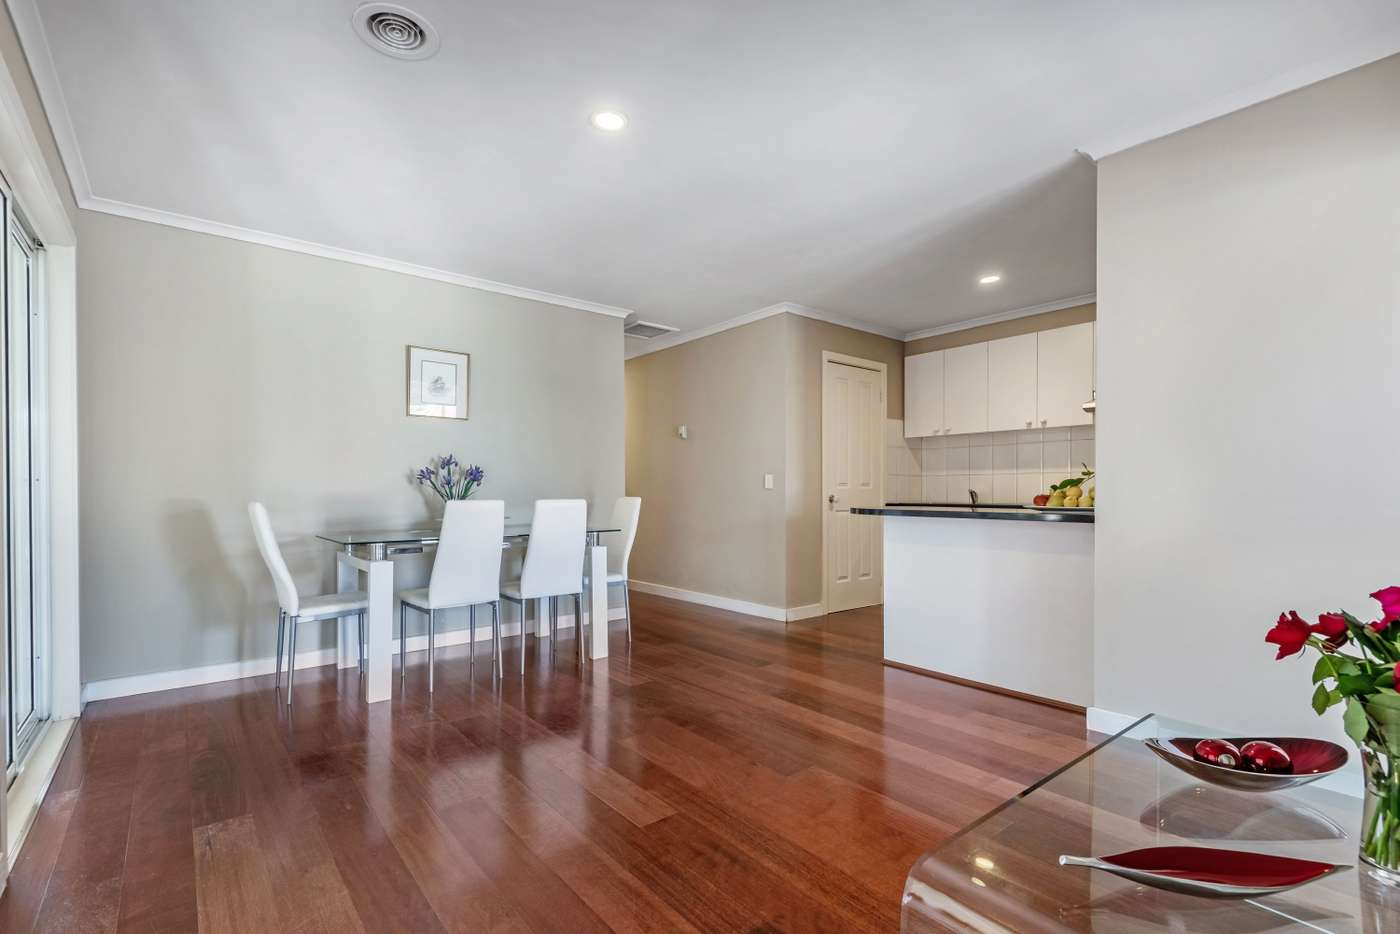 Fifth view of Homely house listing, 6 Quartz Street, Delahey VIC 3037